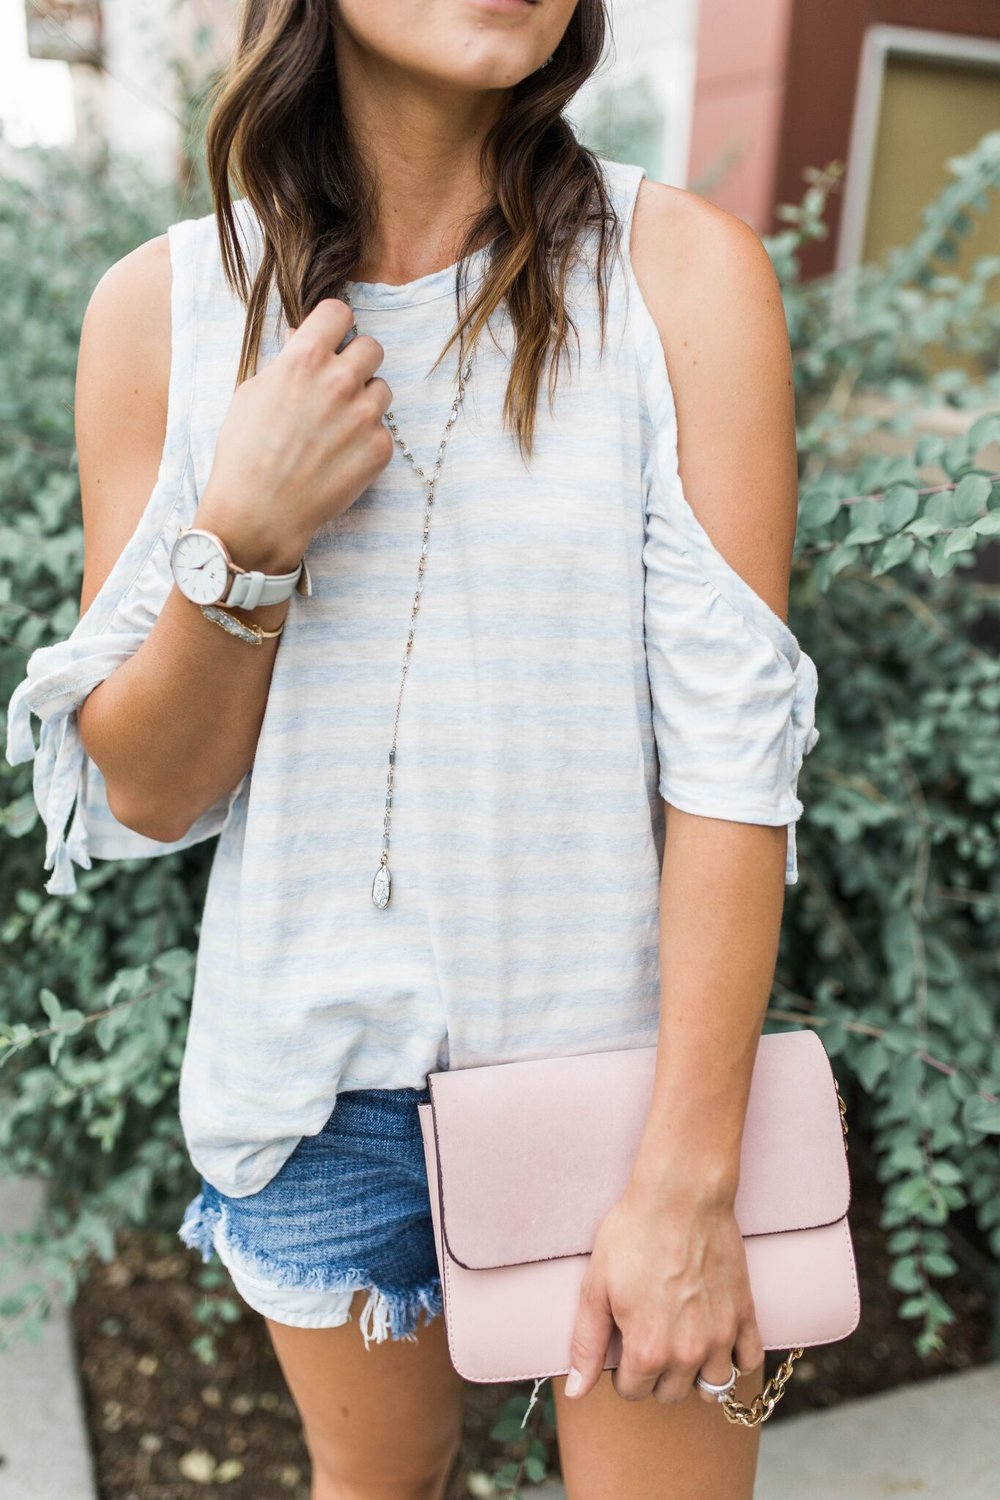 """<img src =""""five-summer-pieces-to-have-in-your-closet.jpg. alt="""" detail-shot-of-denver-fashion-blogger-styling-summer-pieces-to-have-in-your-closet-denim-cut-off-shorts-cold-shoulder-tee-and-steve-madden-jole-pearl-sandal-and-pink-handbags"""">"""